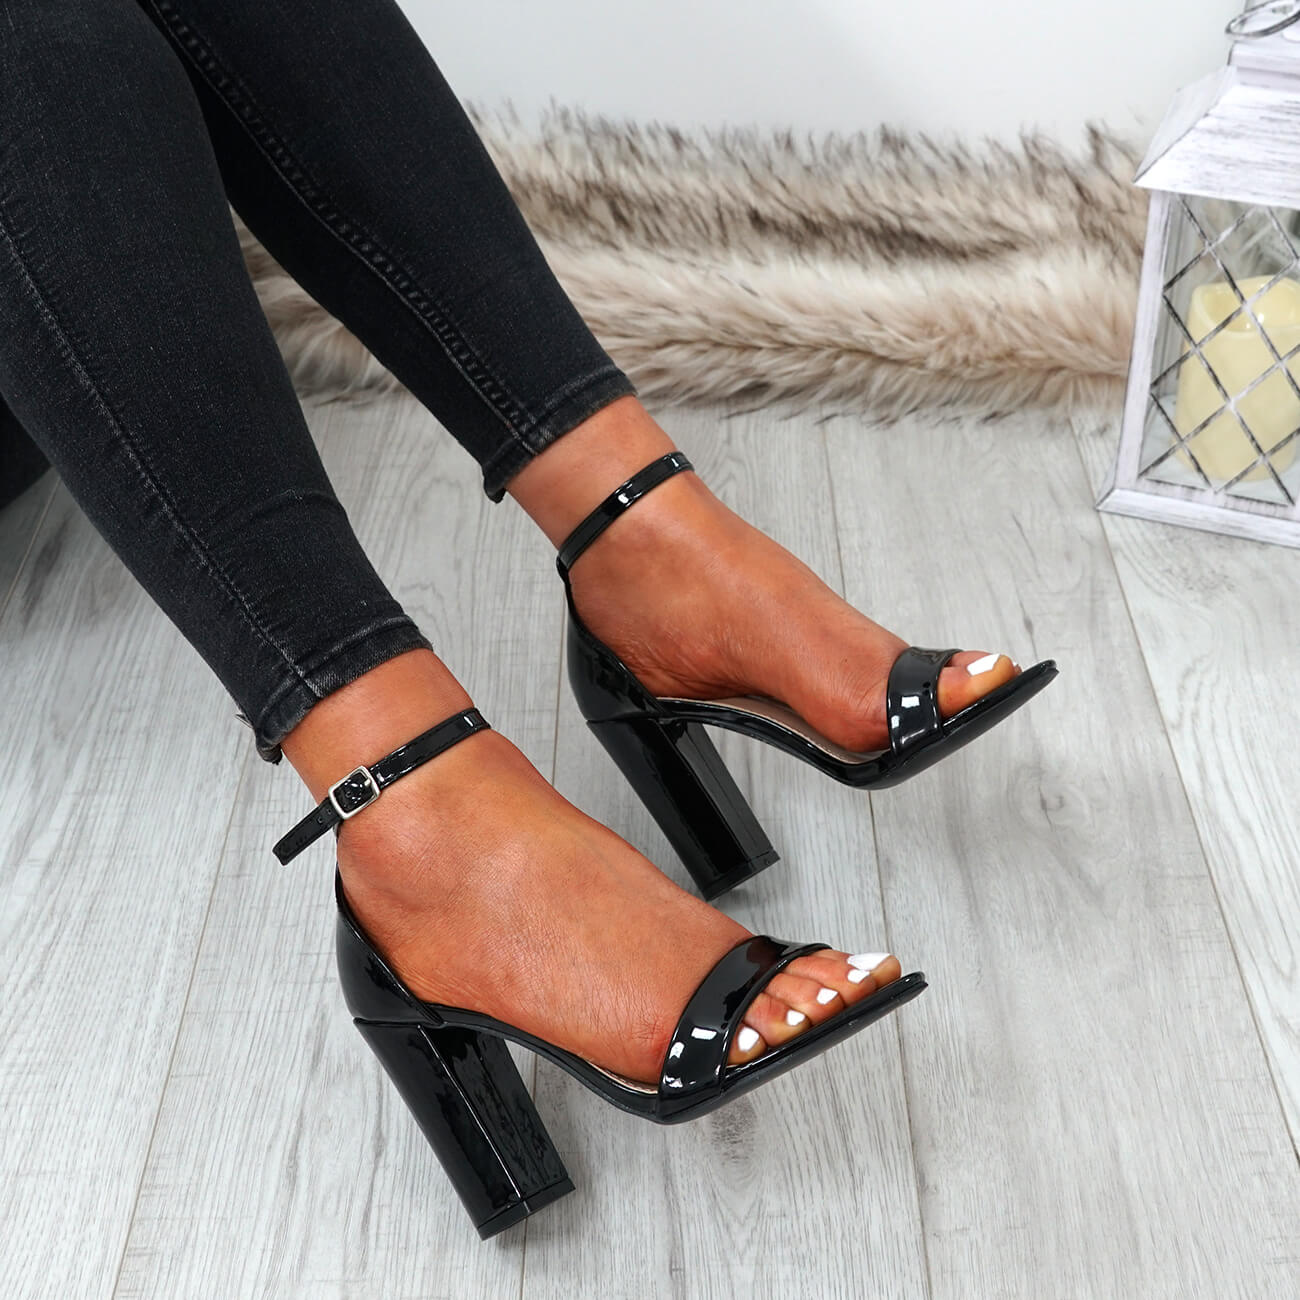 WOMENS-LADIES-ANKLE-STRAP-HIGH-BLOCK-HEEL-SANDALS-PEEP-TOE-PARTY-SHOES-SIZE thumbnail 8